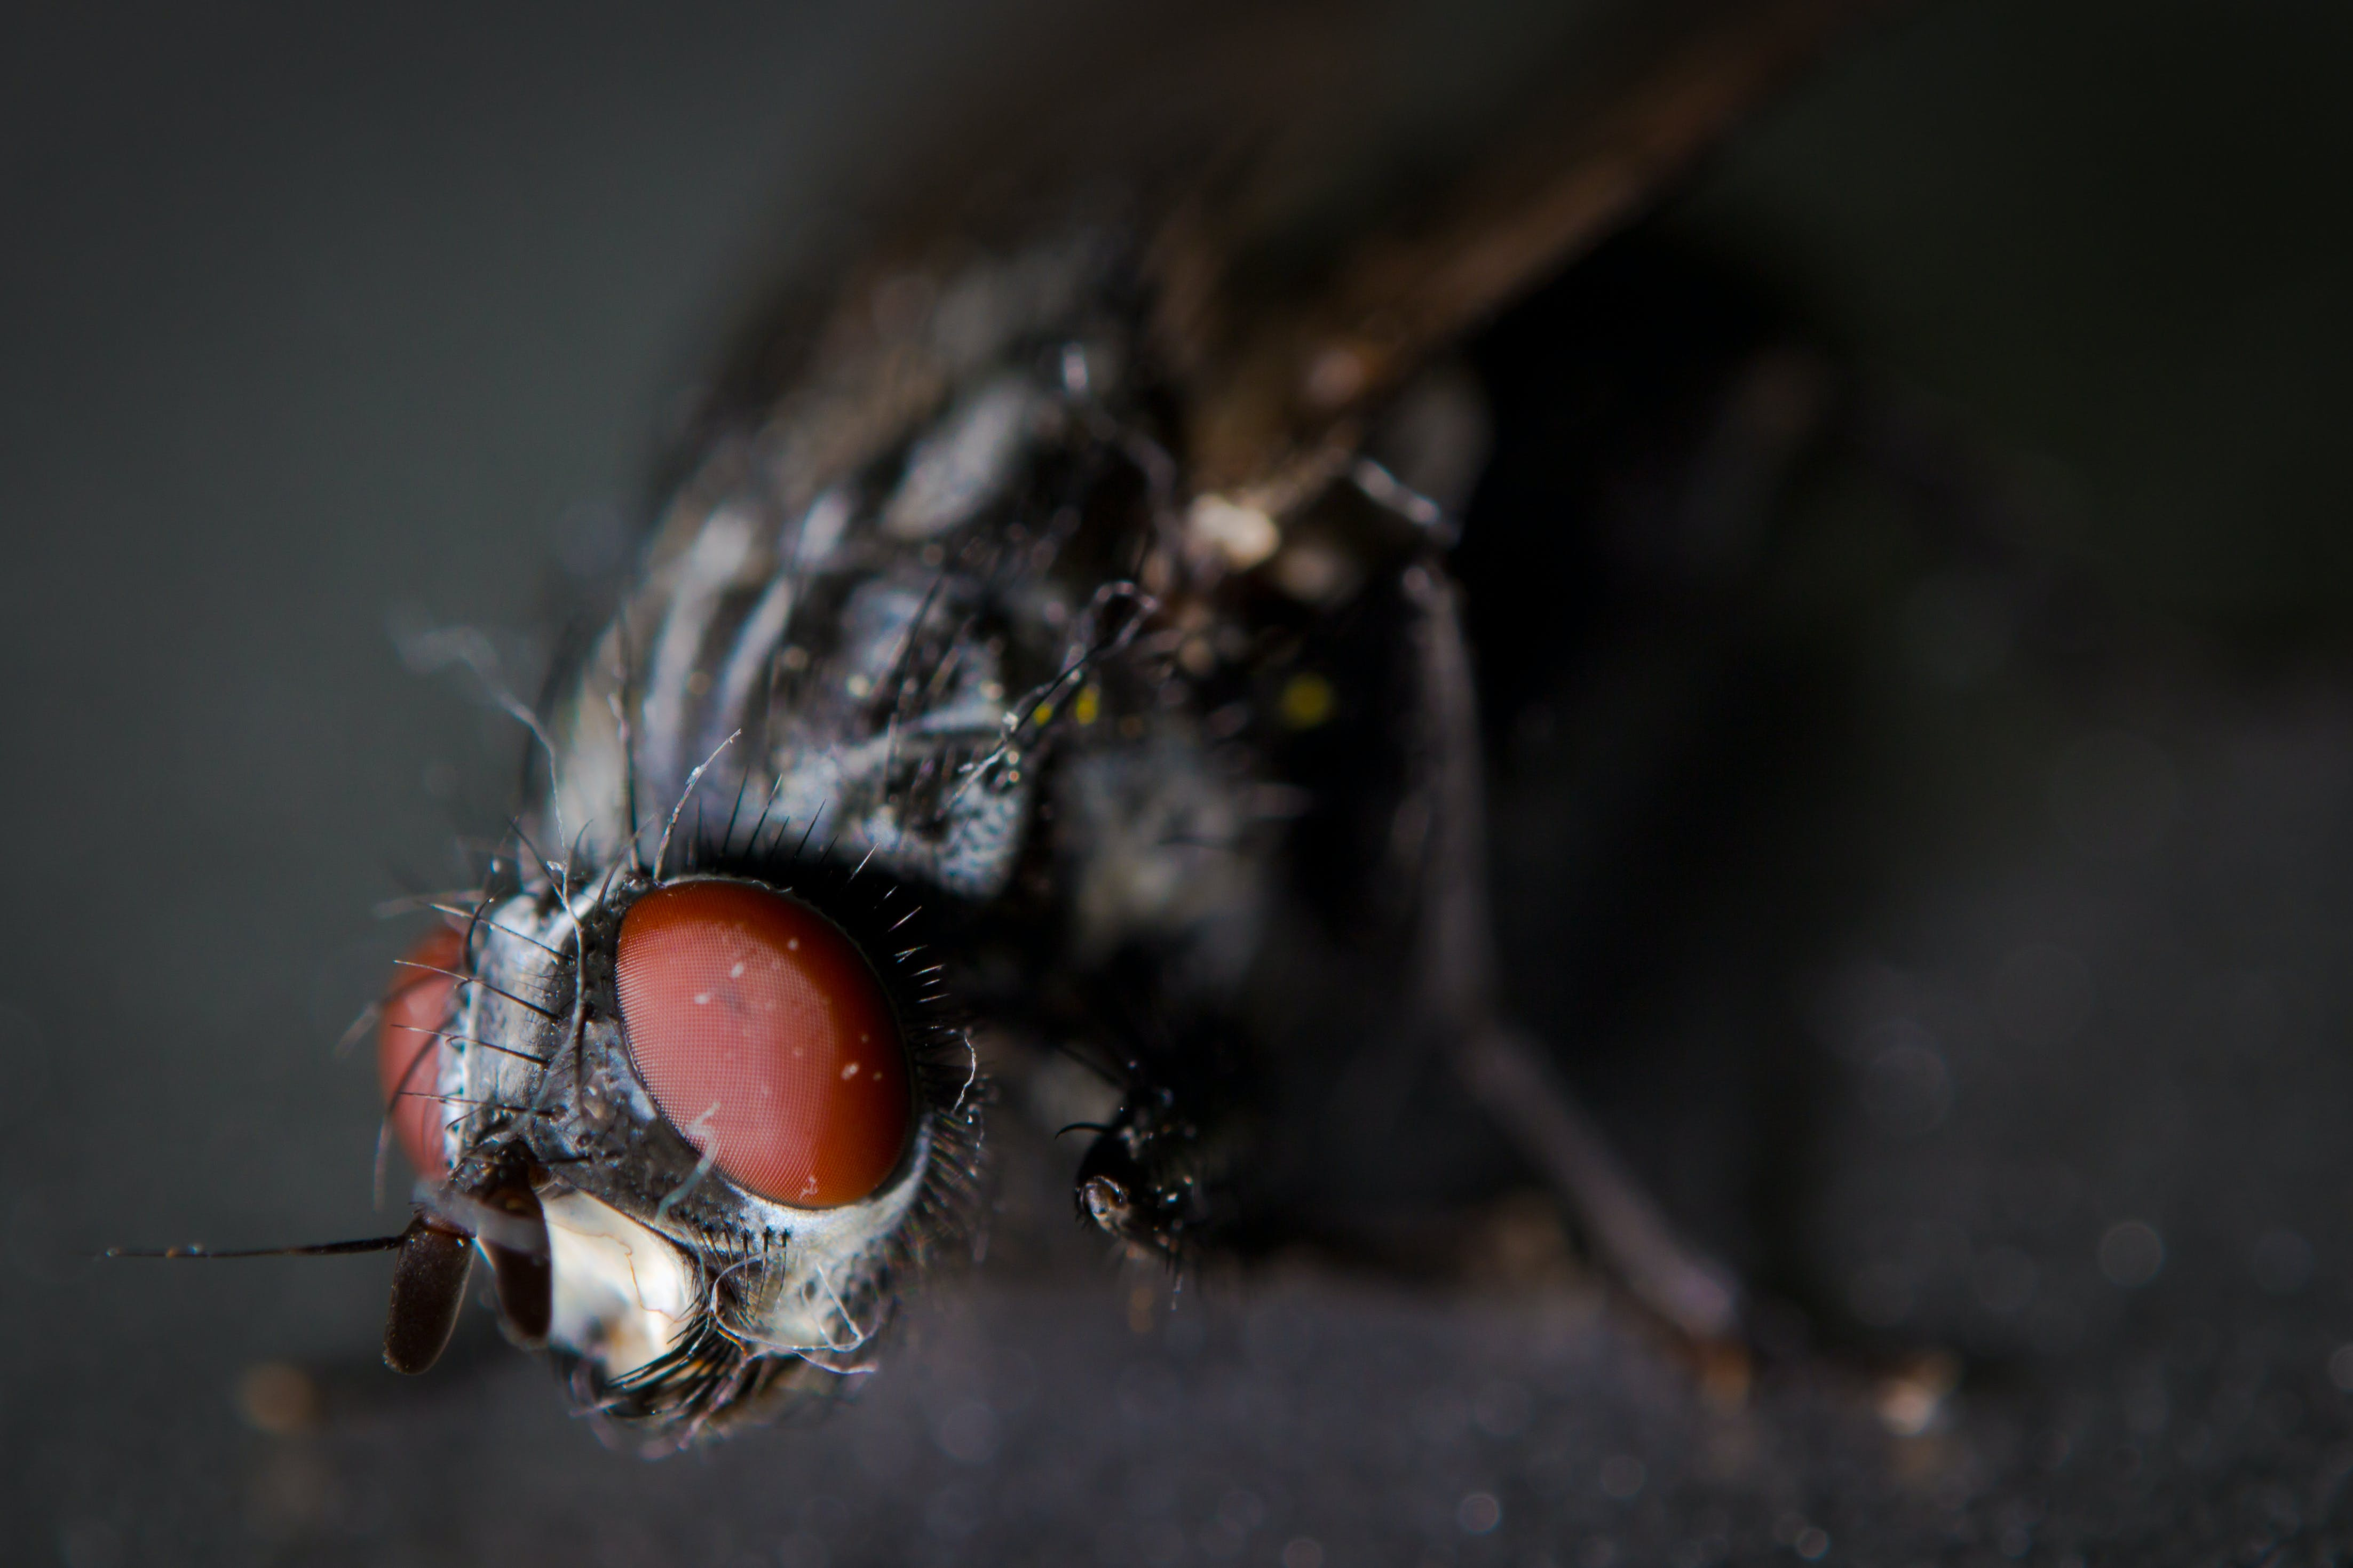 Micro Photography of Black Fly